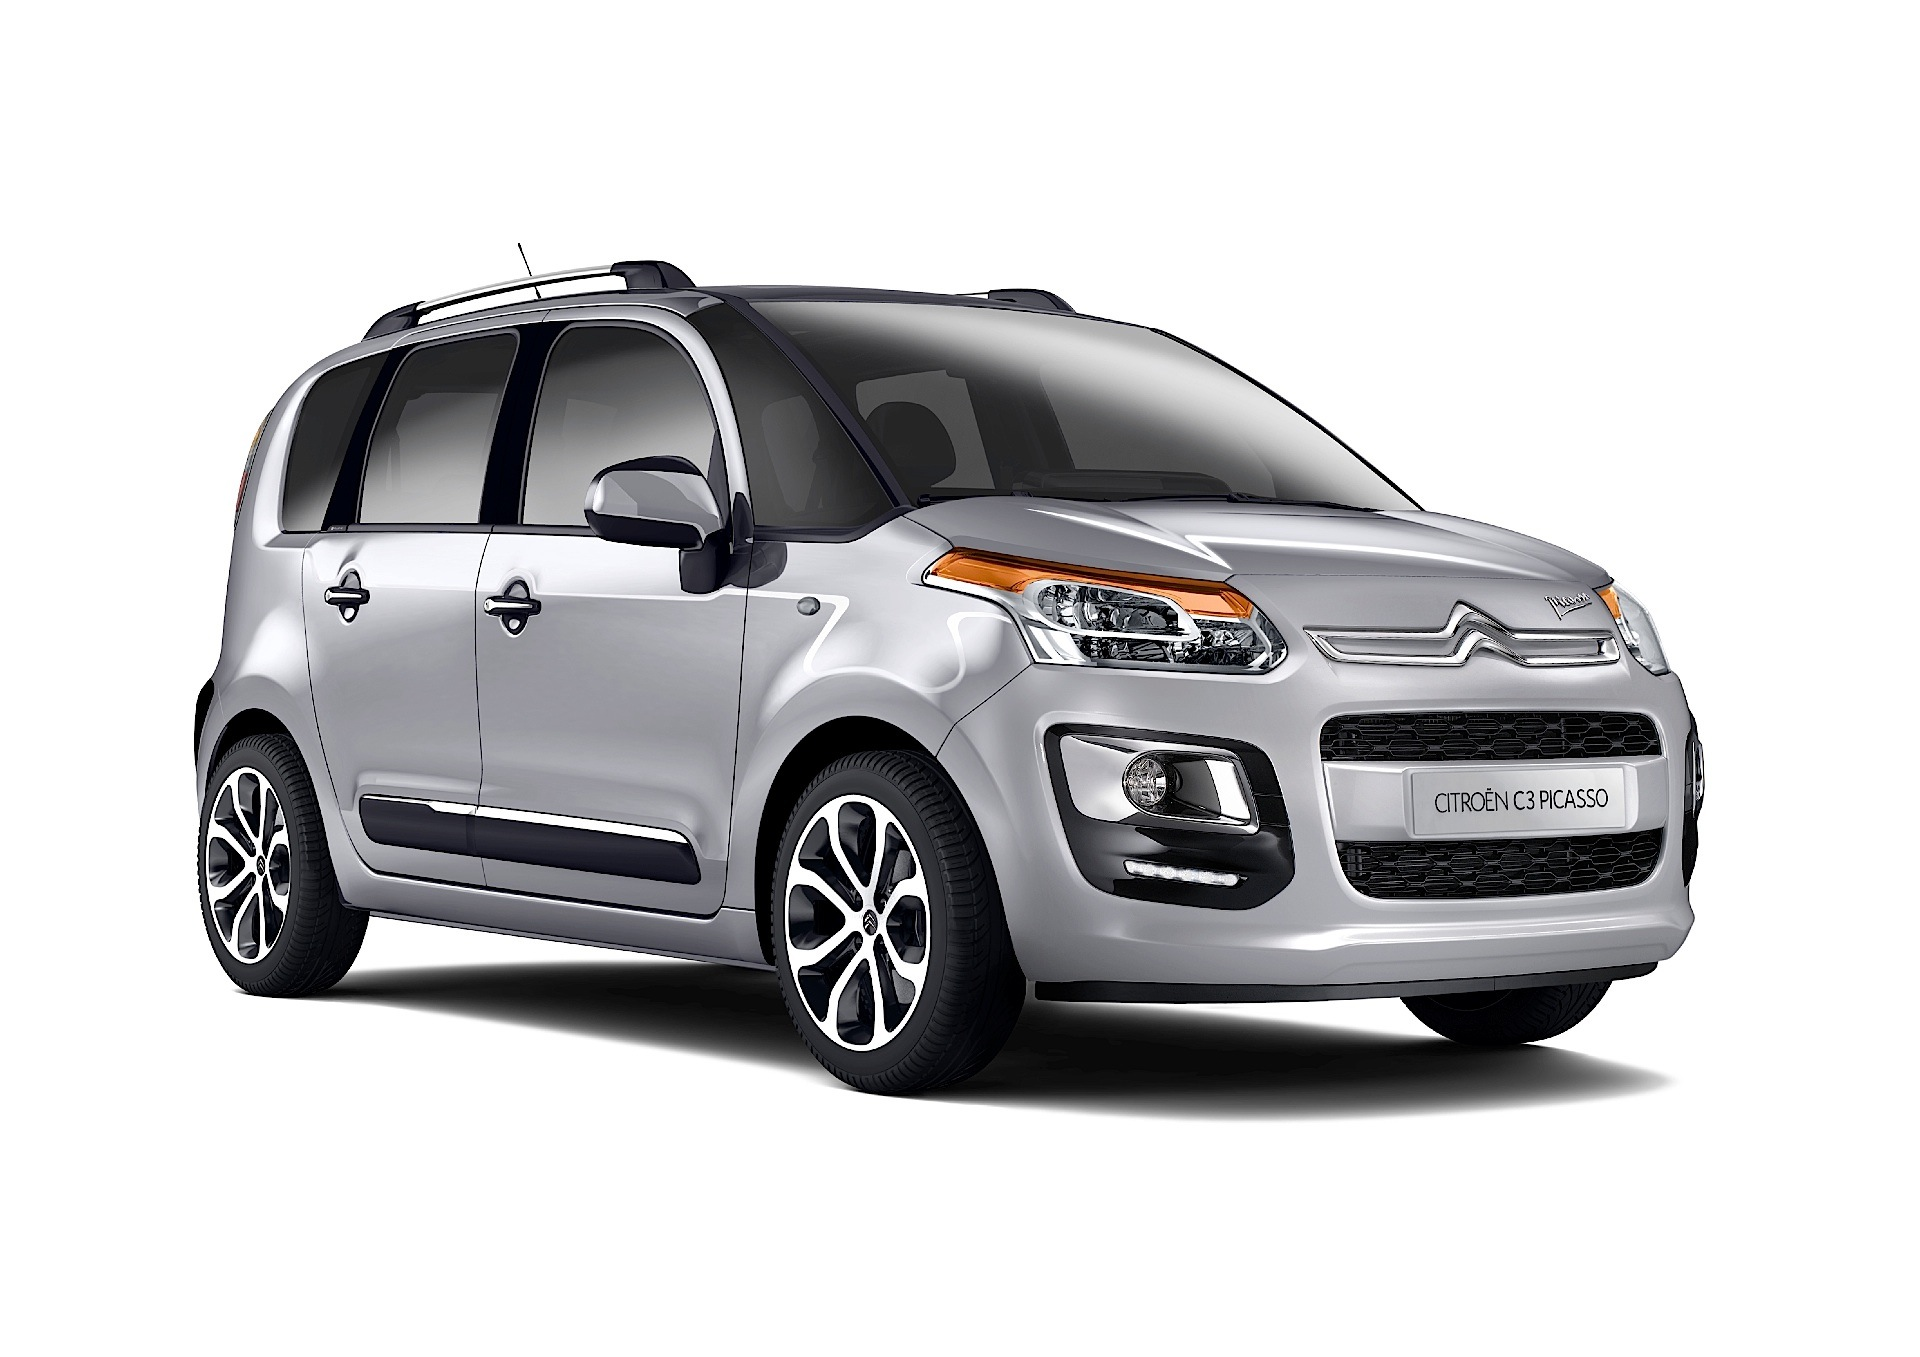 citroen c3 picasso 2013 2014 2015 2016 autoevolution. Black Bedroom Furniture Sets. Home Design Ideas